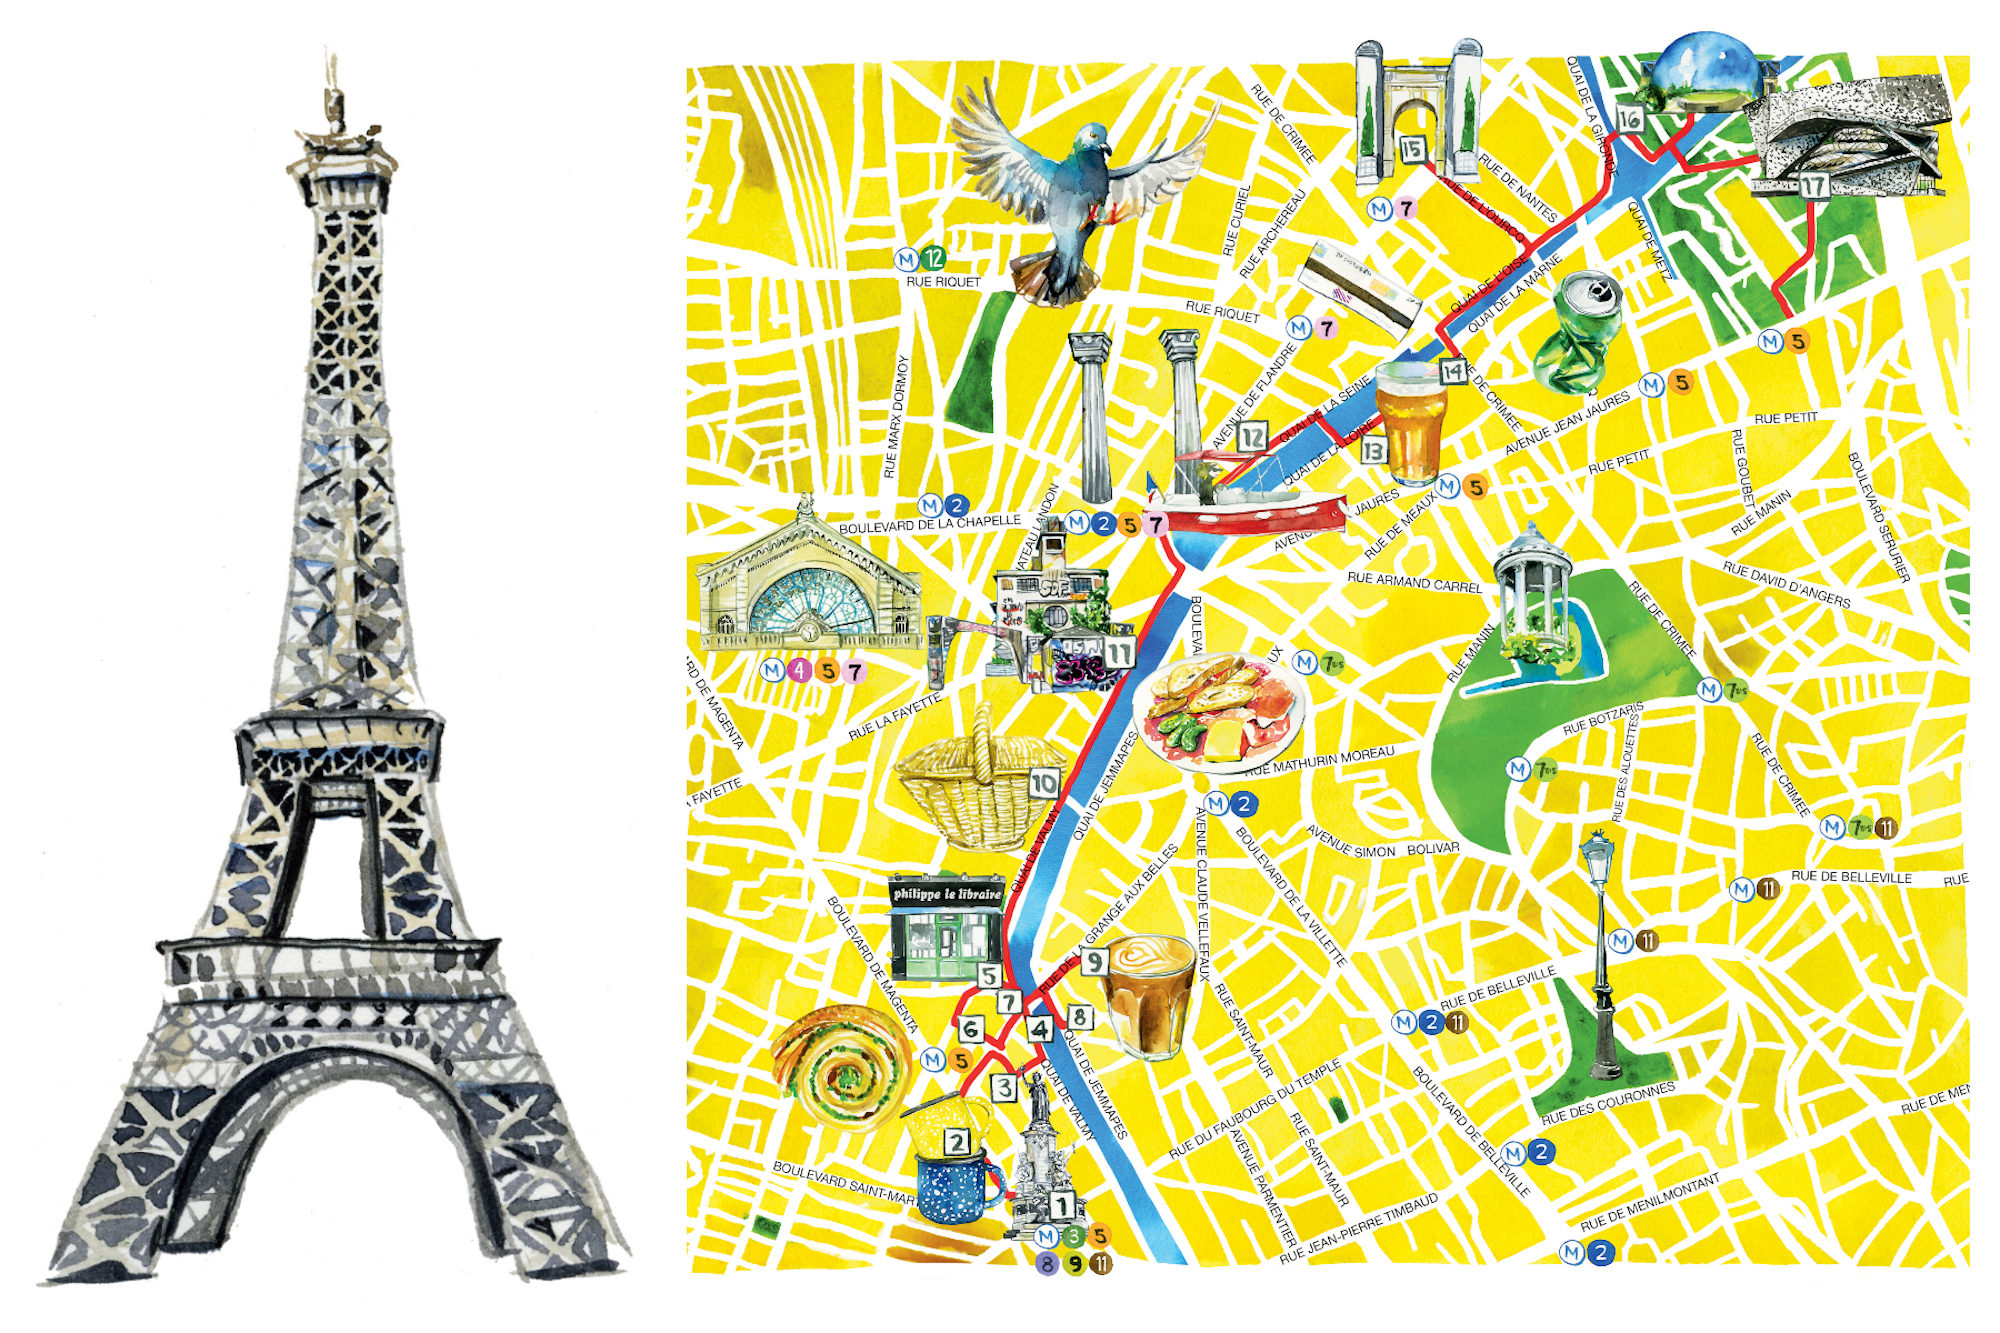 Jessie Kanelos Weiner's watercolor illustrations in the guidebook 'Paris in Stride' include the Eiffel Tower (left) and a map of things to do in Paris (right).